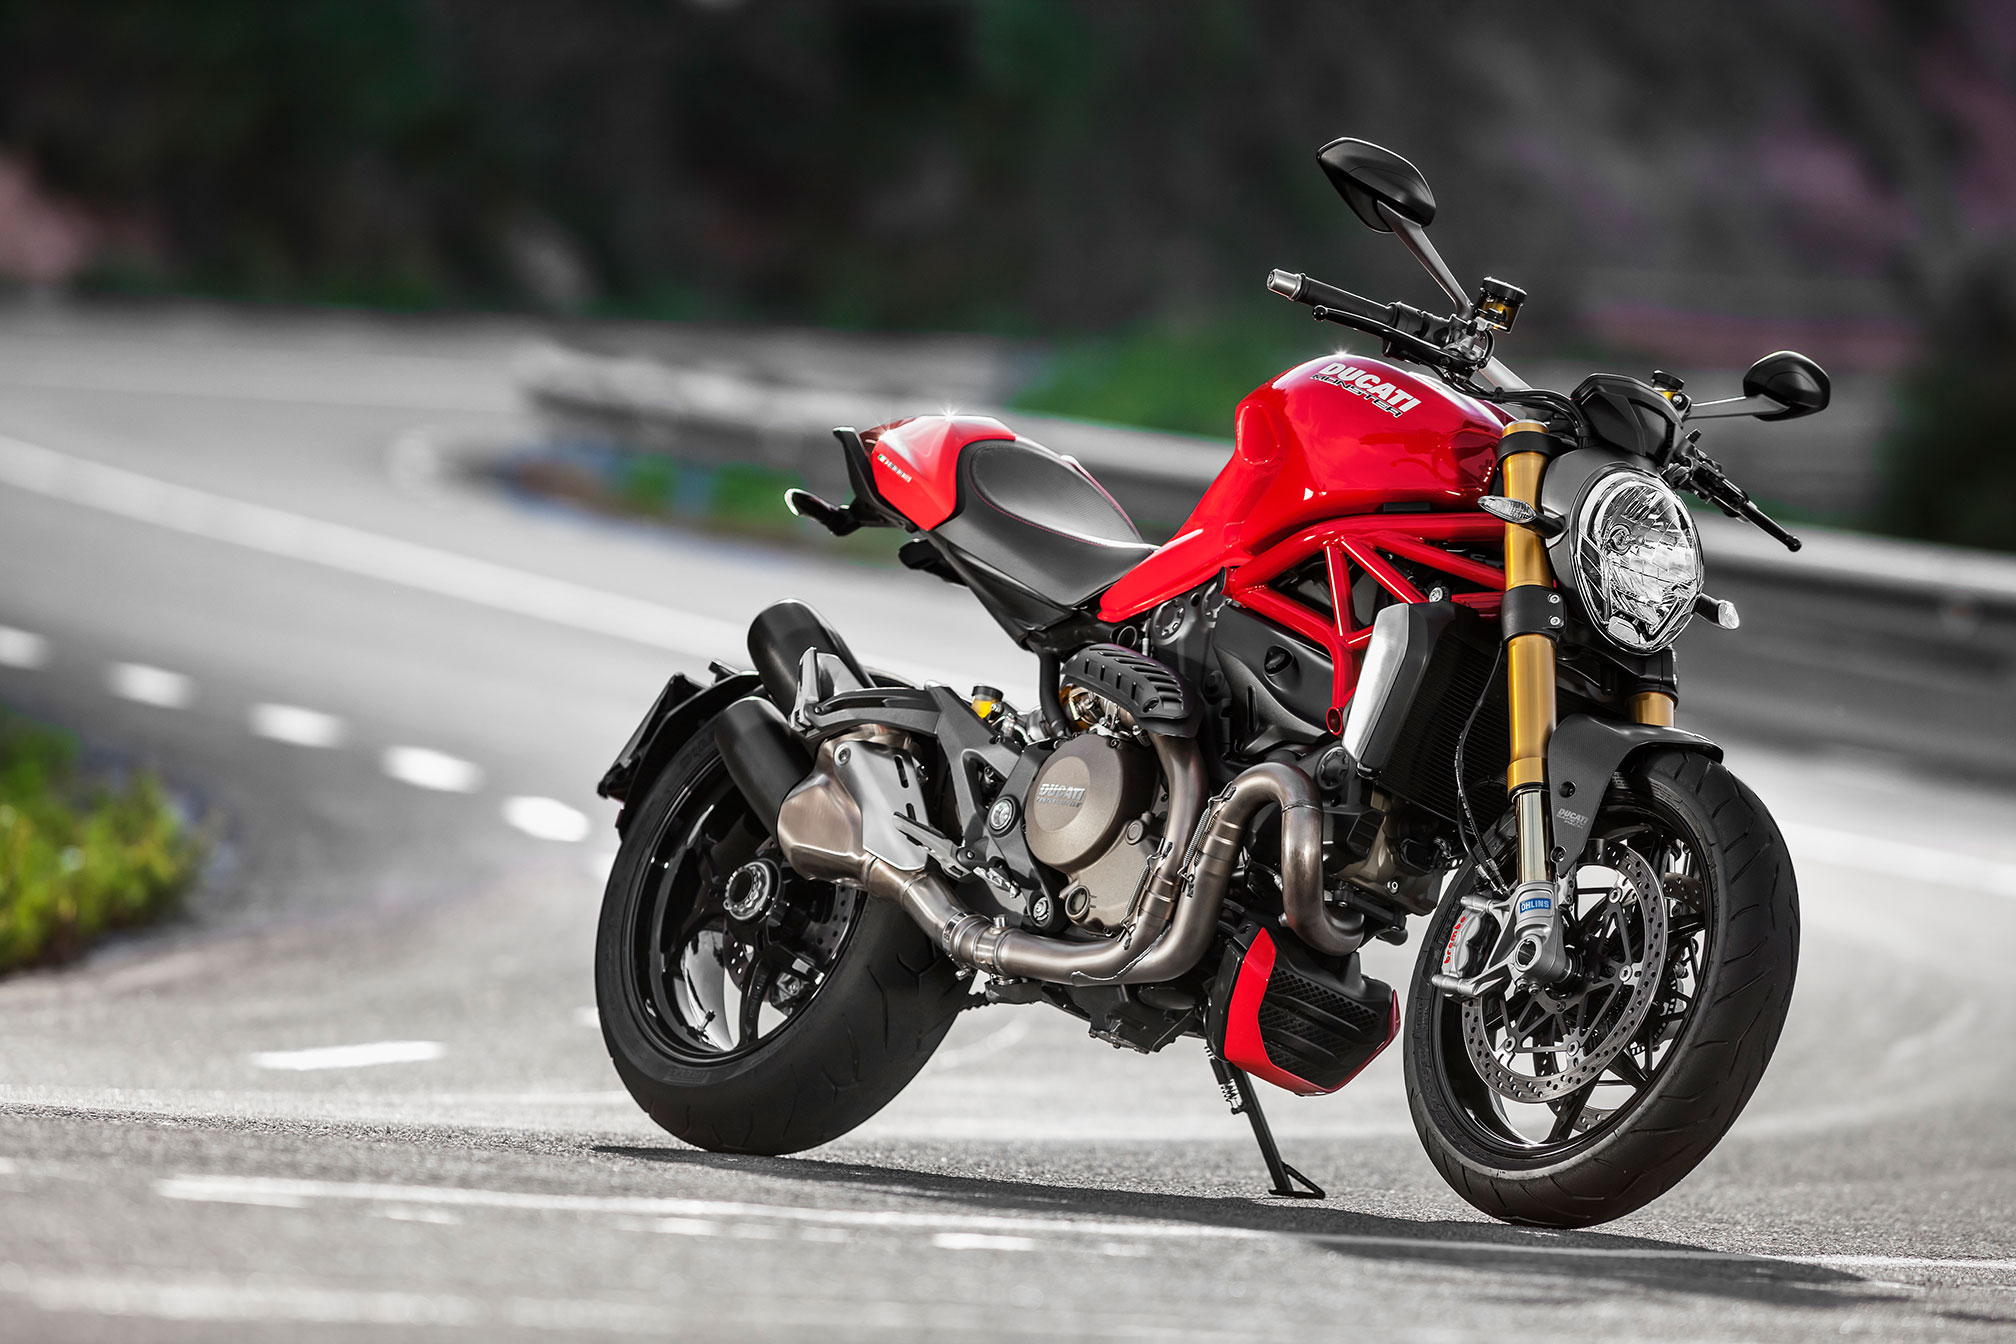 Ducati introduces new middleweight Monster - Motorcycle Mojo